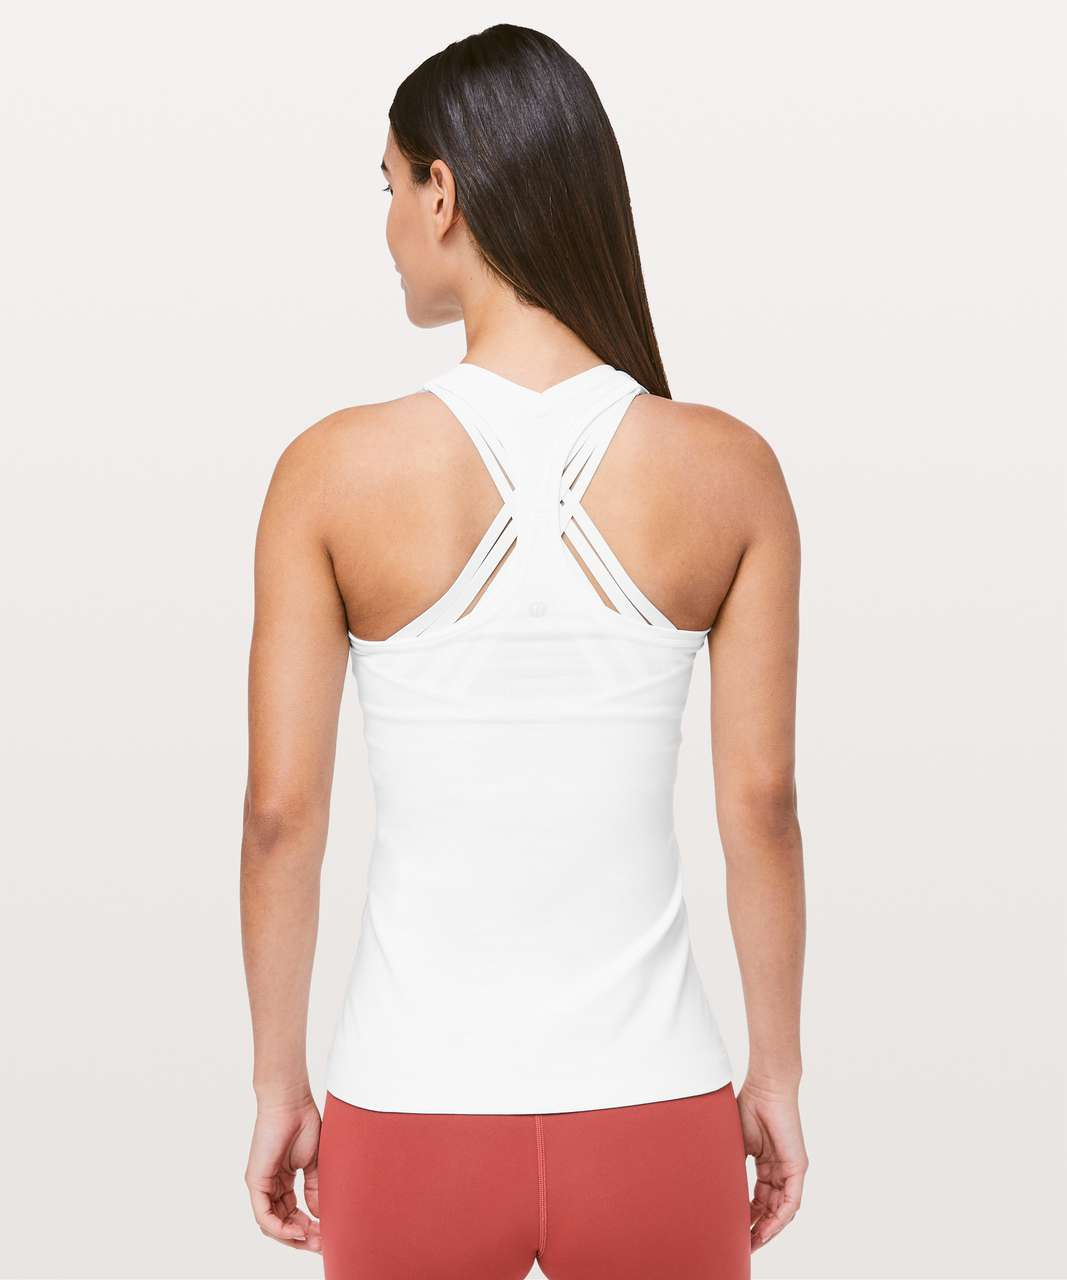 Lululemon Cool Racerback II - White